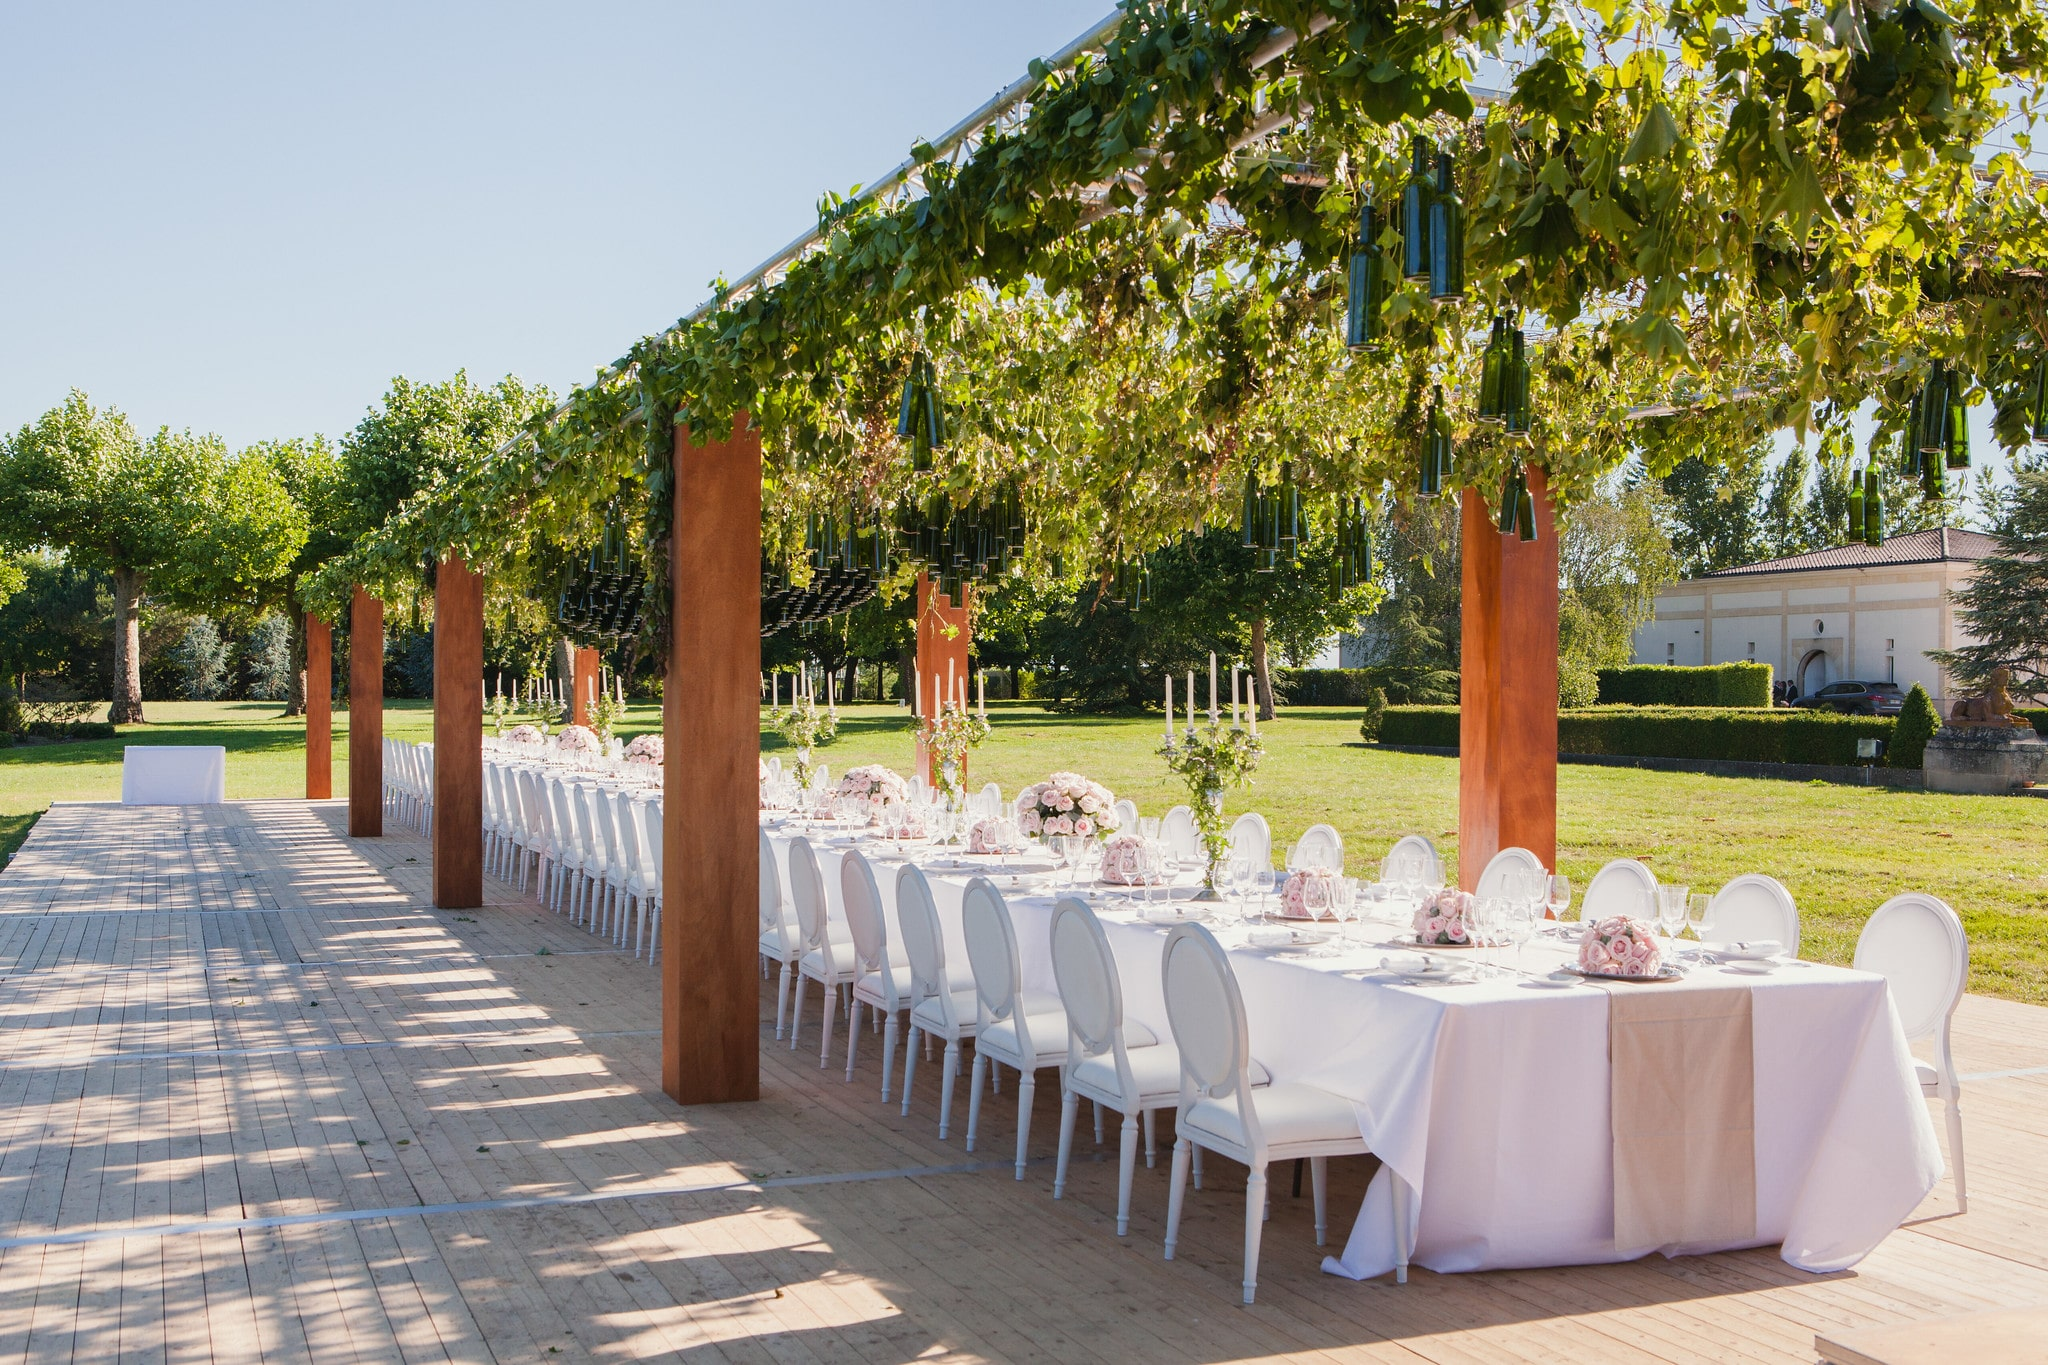 The Canopy Castel: An exceptional dinner in a Castle in Bordeaux